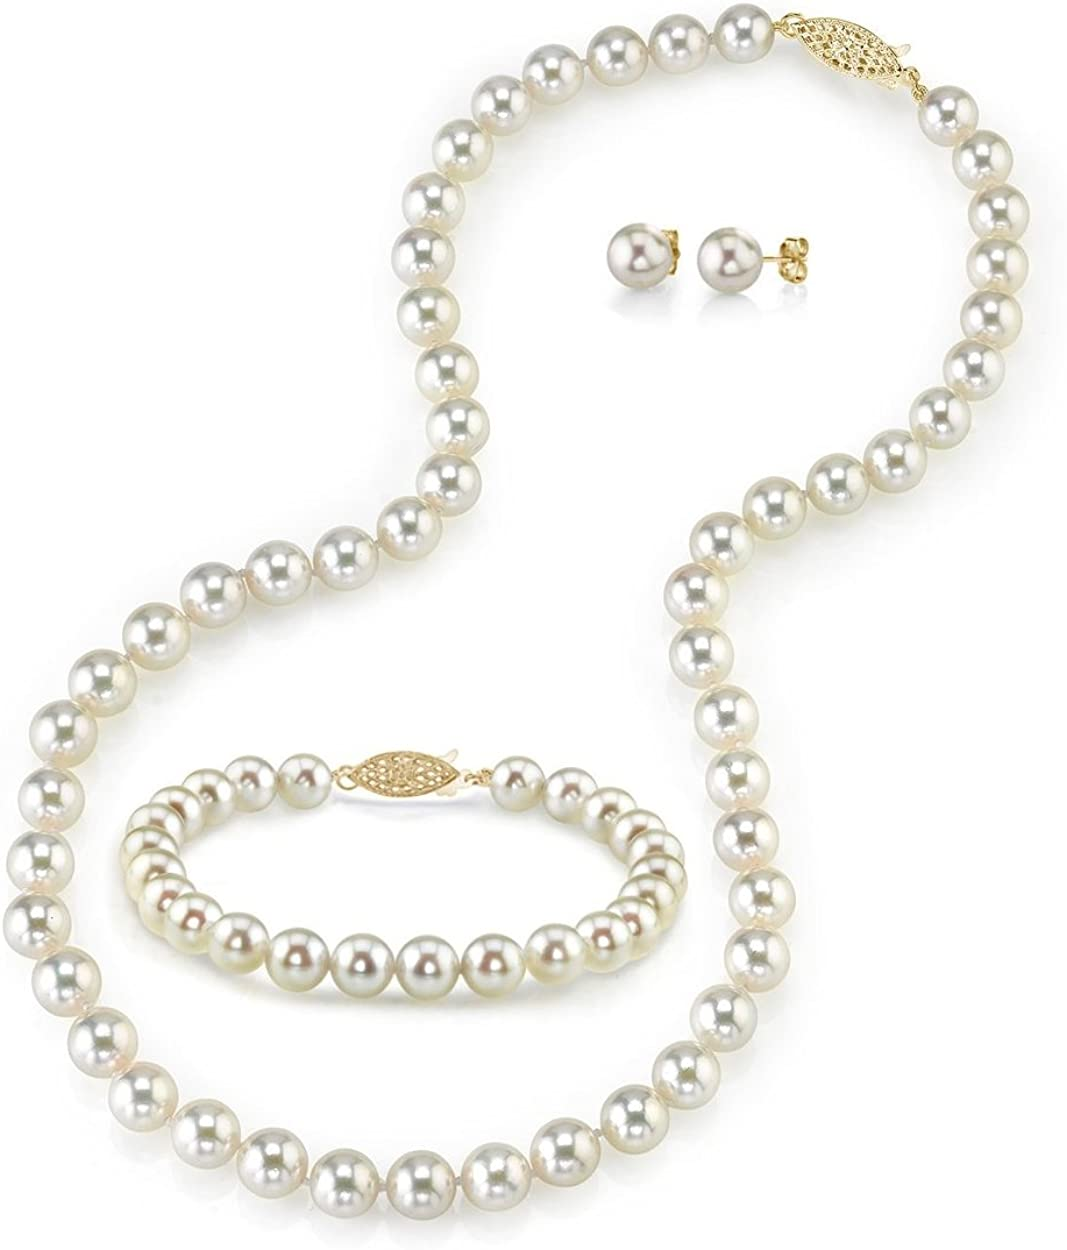 THE PEARL SOURCE 14K Gold 7-7.5mm Round Cultured Akoya National uniform free shipping White specialty shop Pea